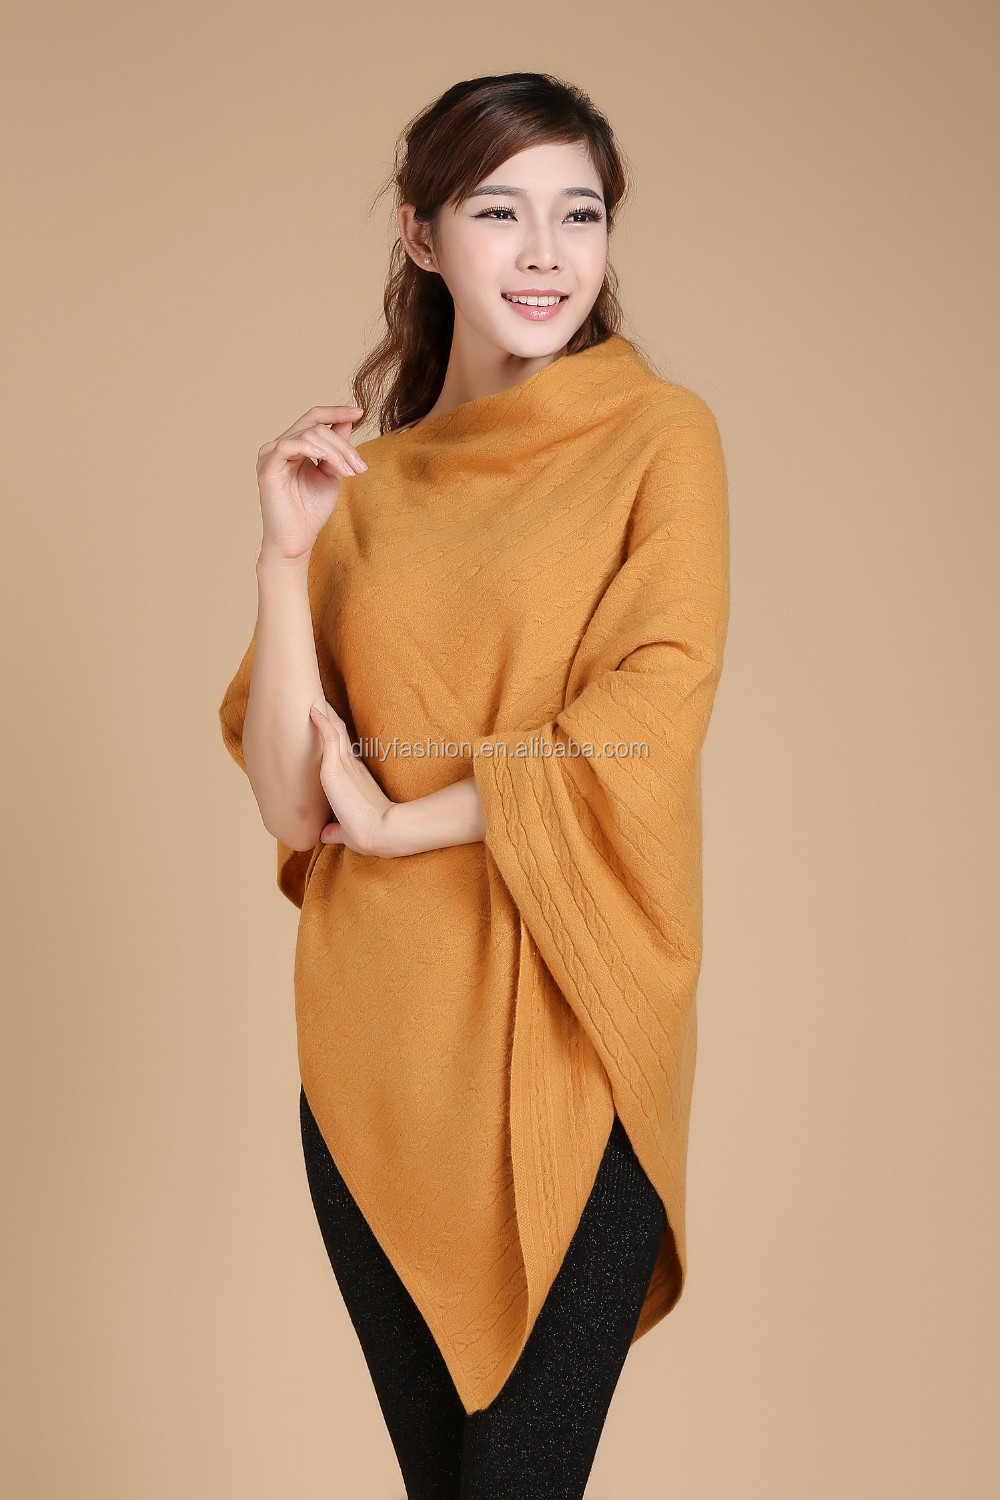 Wool And Cashmere Capes With Tassel Ponchos And Shawls Women - Buy Ponchos  And Shawls Women,Wool And Cashmere Capes,Capes With Tassel Product on